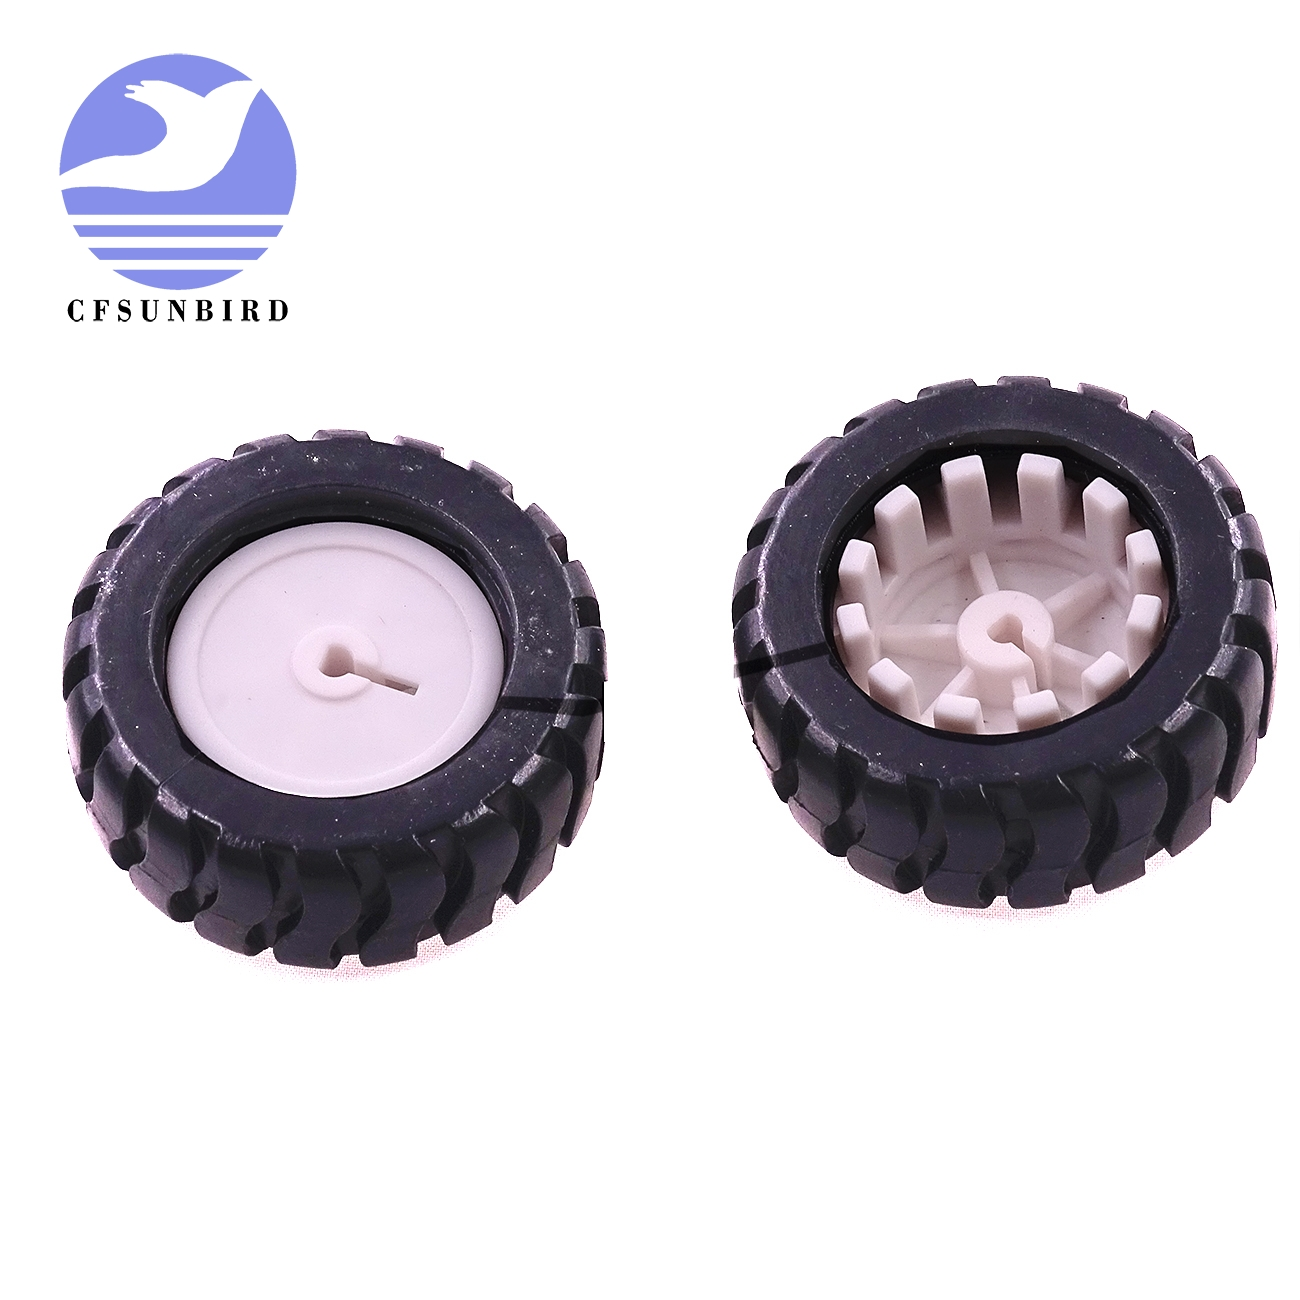 Persevering Rubber Wheels Tires Trye 43*19*3mm D-hole Shaft Wheel For Robot Smart Car Platform Diy Rc Toys Wholesale 50pcs Cool In Summer And Warm In Winter Electronic Components & Supplies